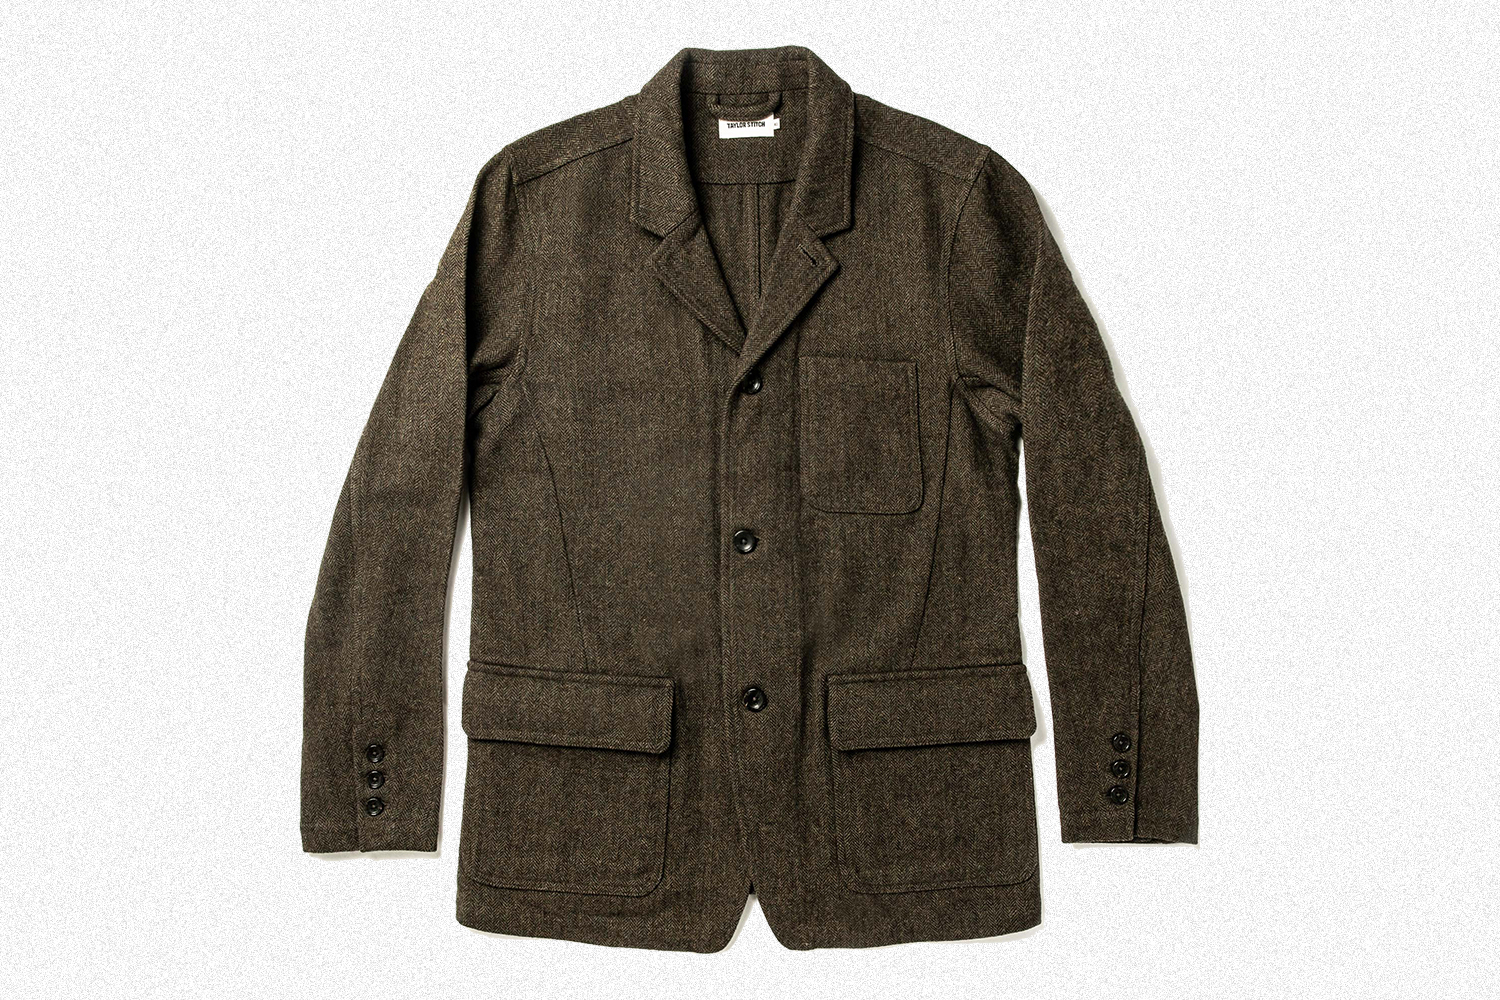 The Gibson Jacket from Taylor Stitch